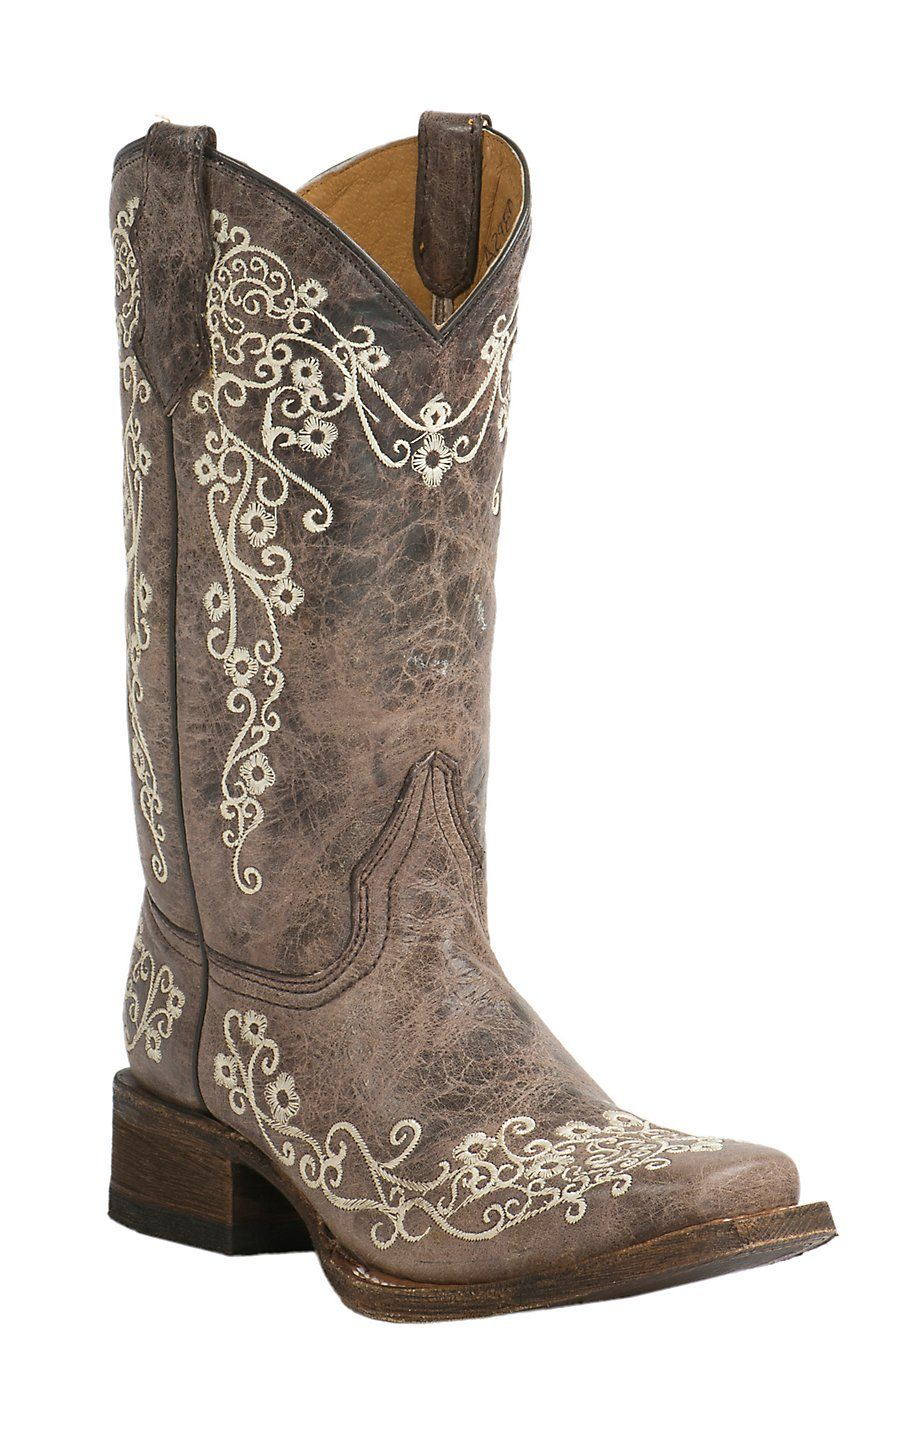 Corral Me Boots Ivory corral youth vintage w ivory floral embroidery square